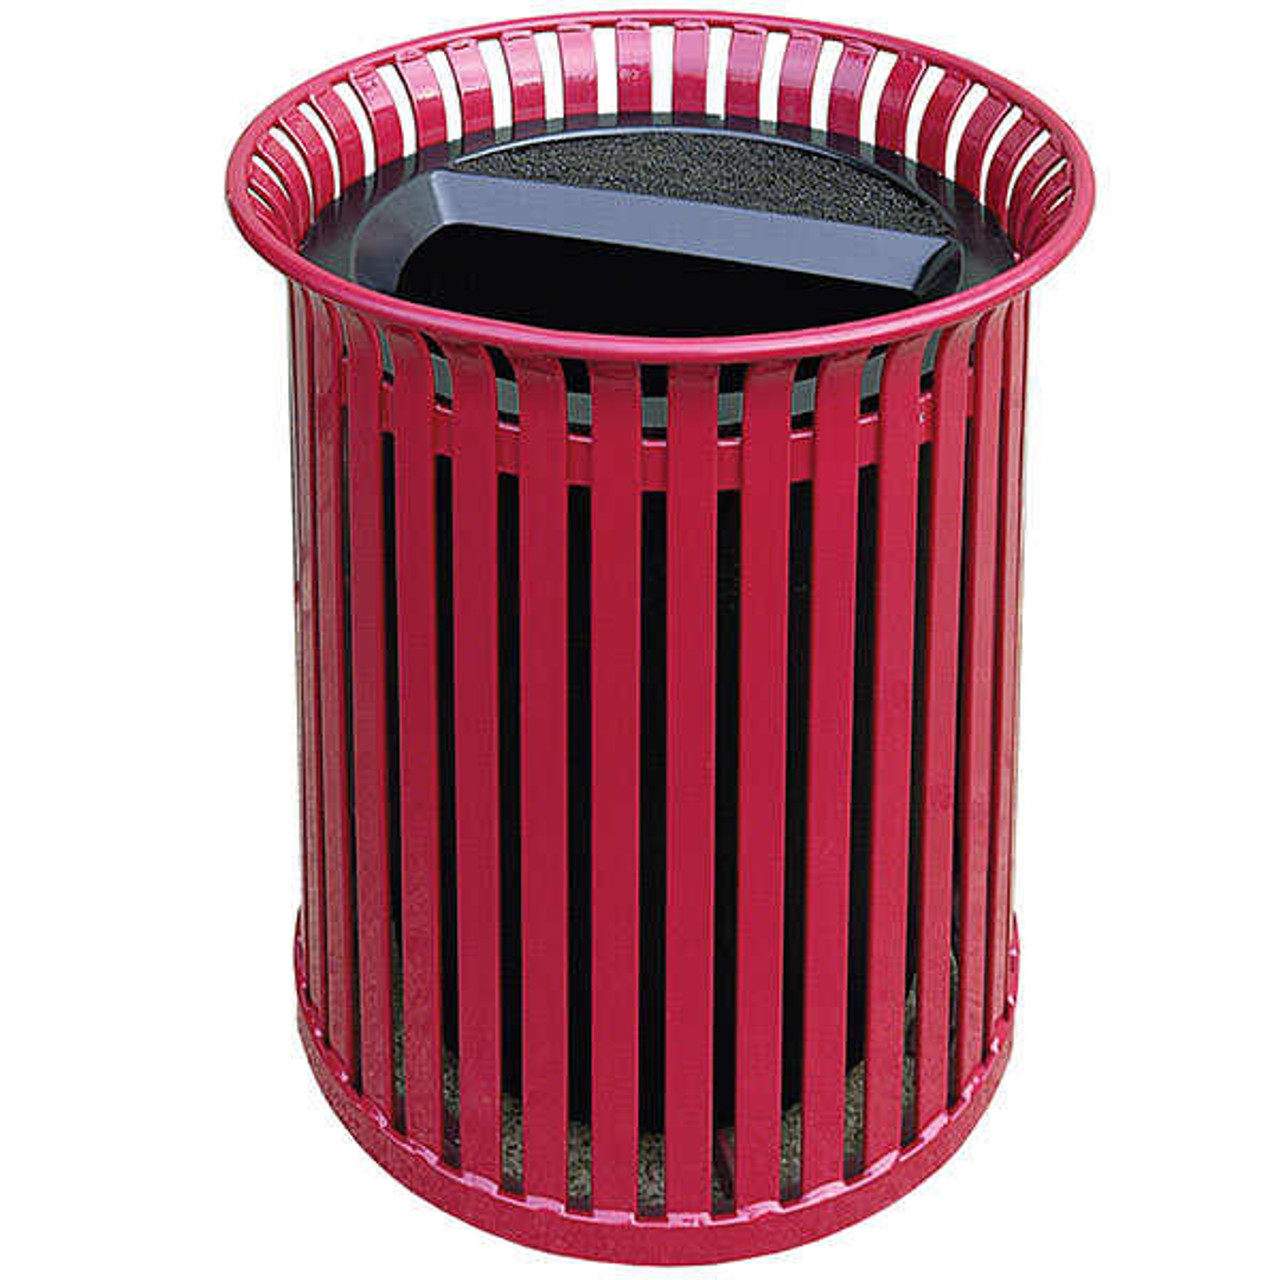 42 Gallon Steel Outdoor Ash Trash Container MF3225